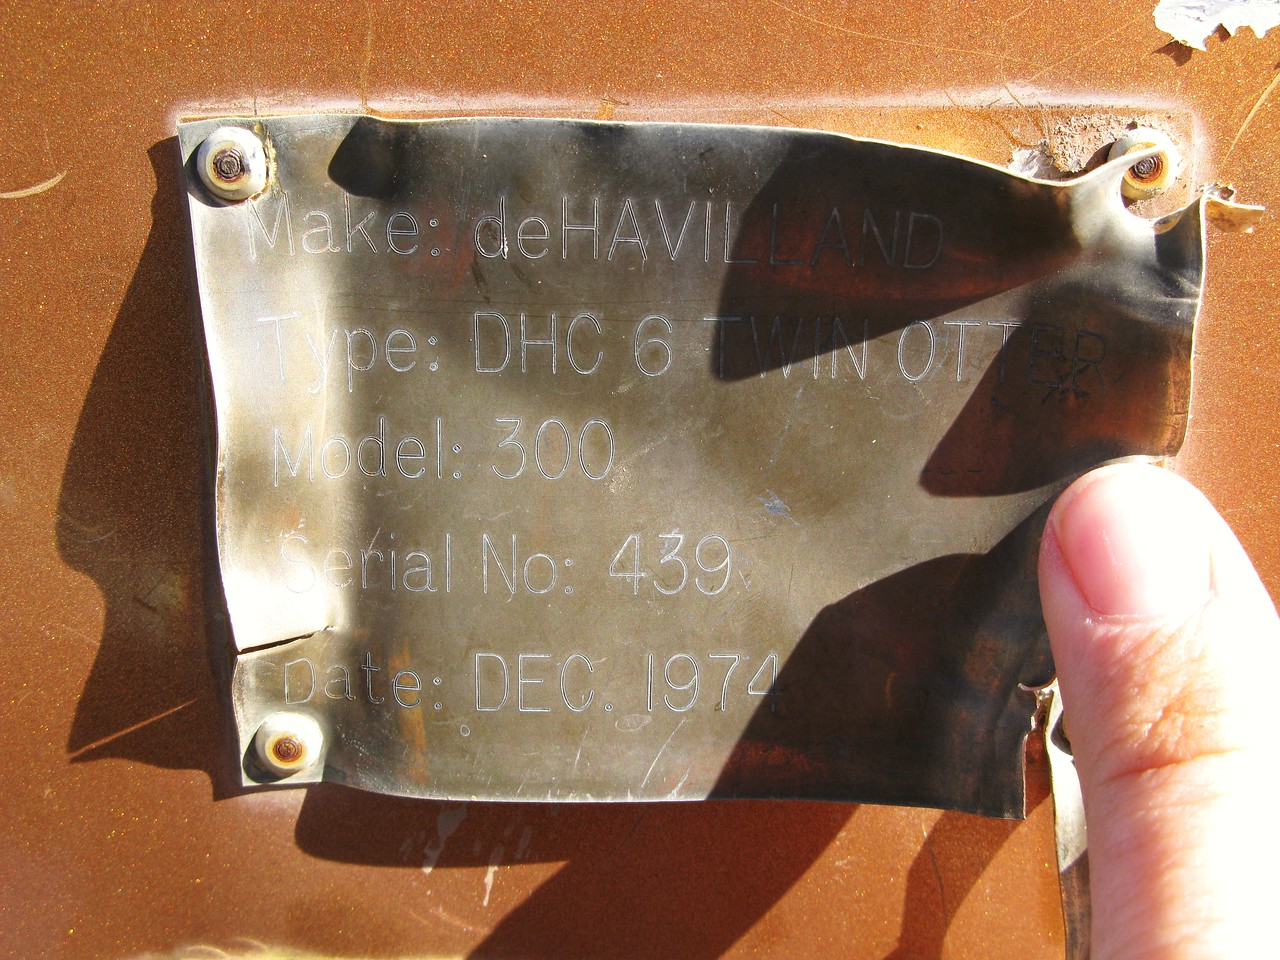 Near the aft section of the fuselage I located the aircraft data placard which is required on all U.S. civilian aircraft. This placard is different than the original aircraft manufacture's placard located in the aft baggage compartment.